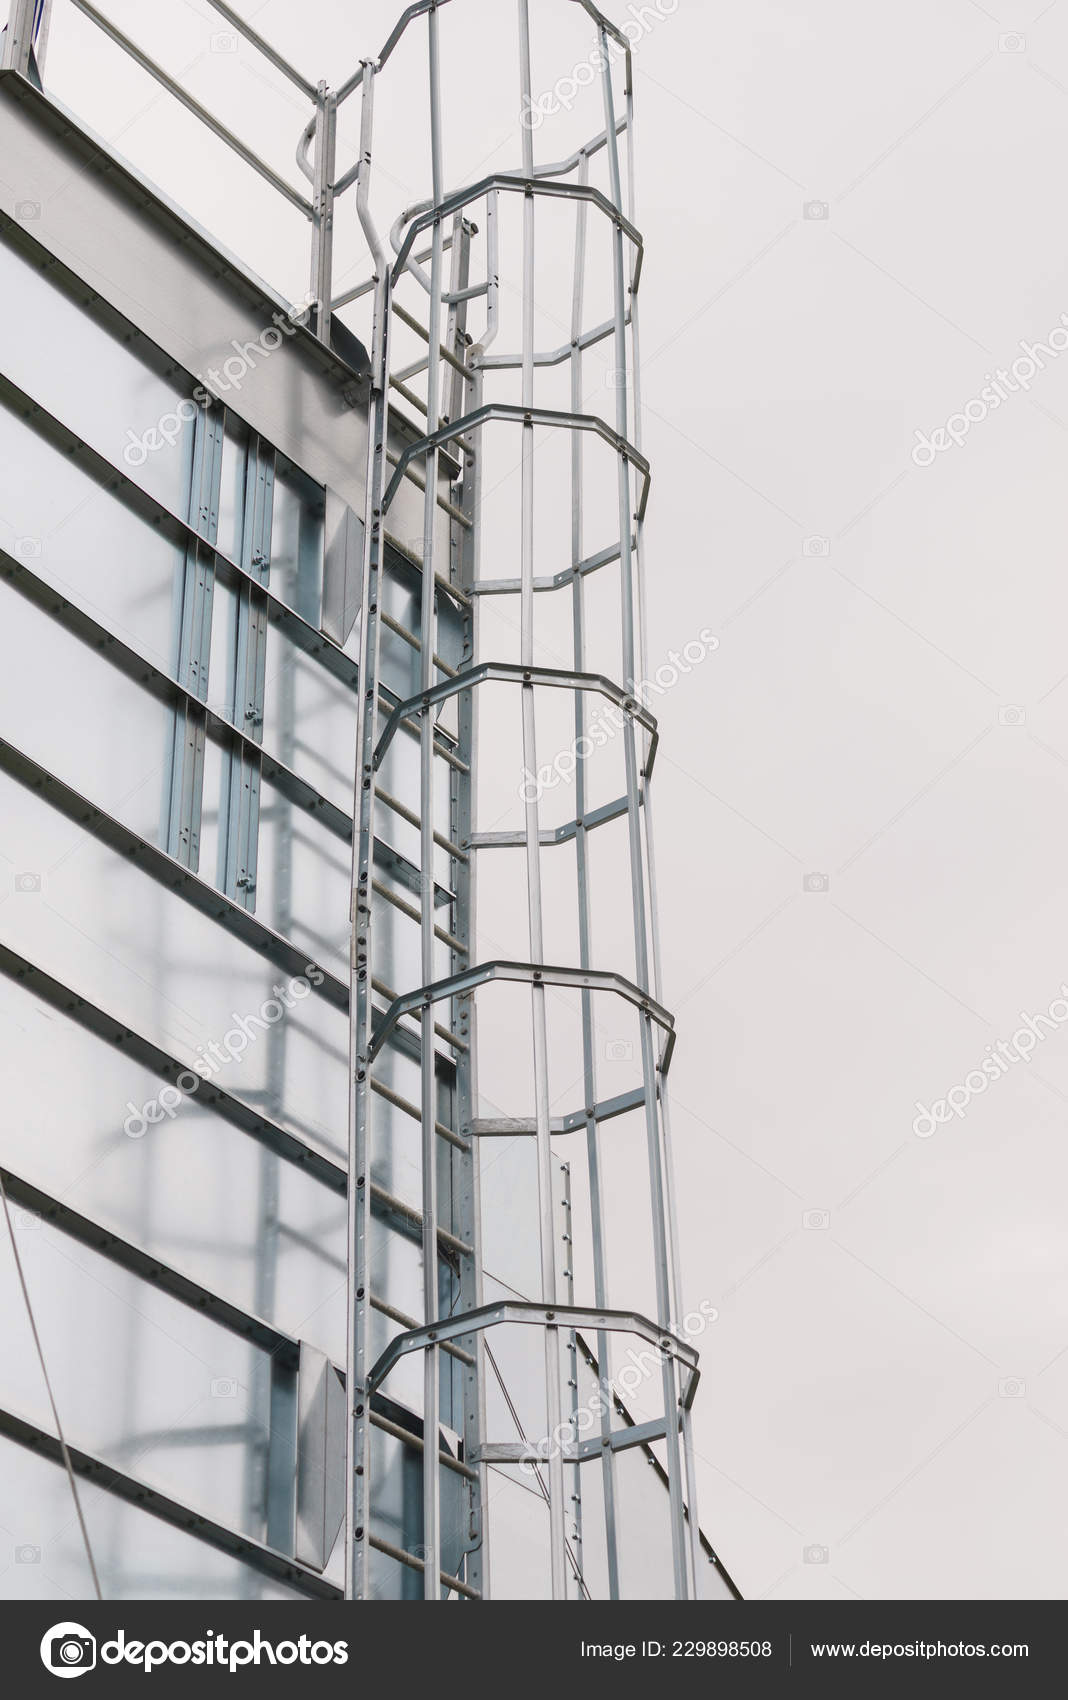 Industrial Metal Ladder Protection Railing Safety Rules